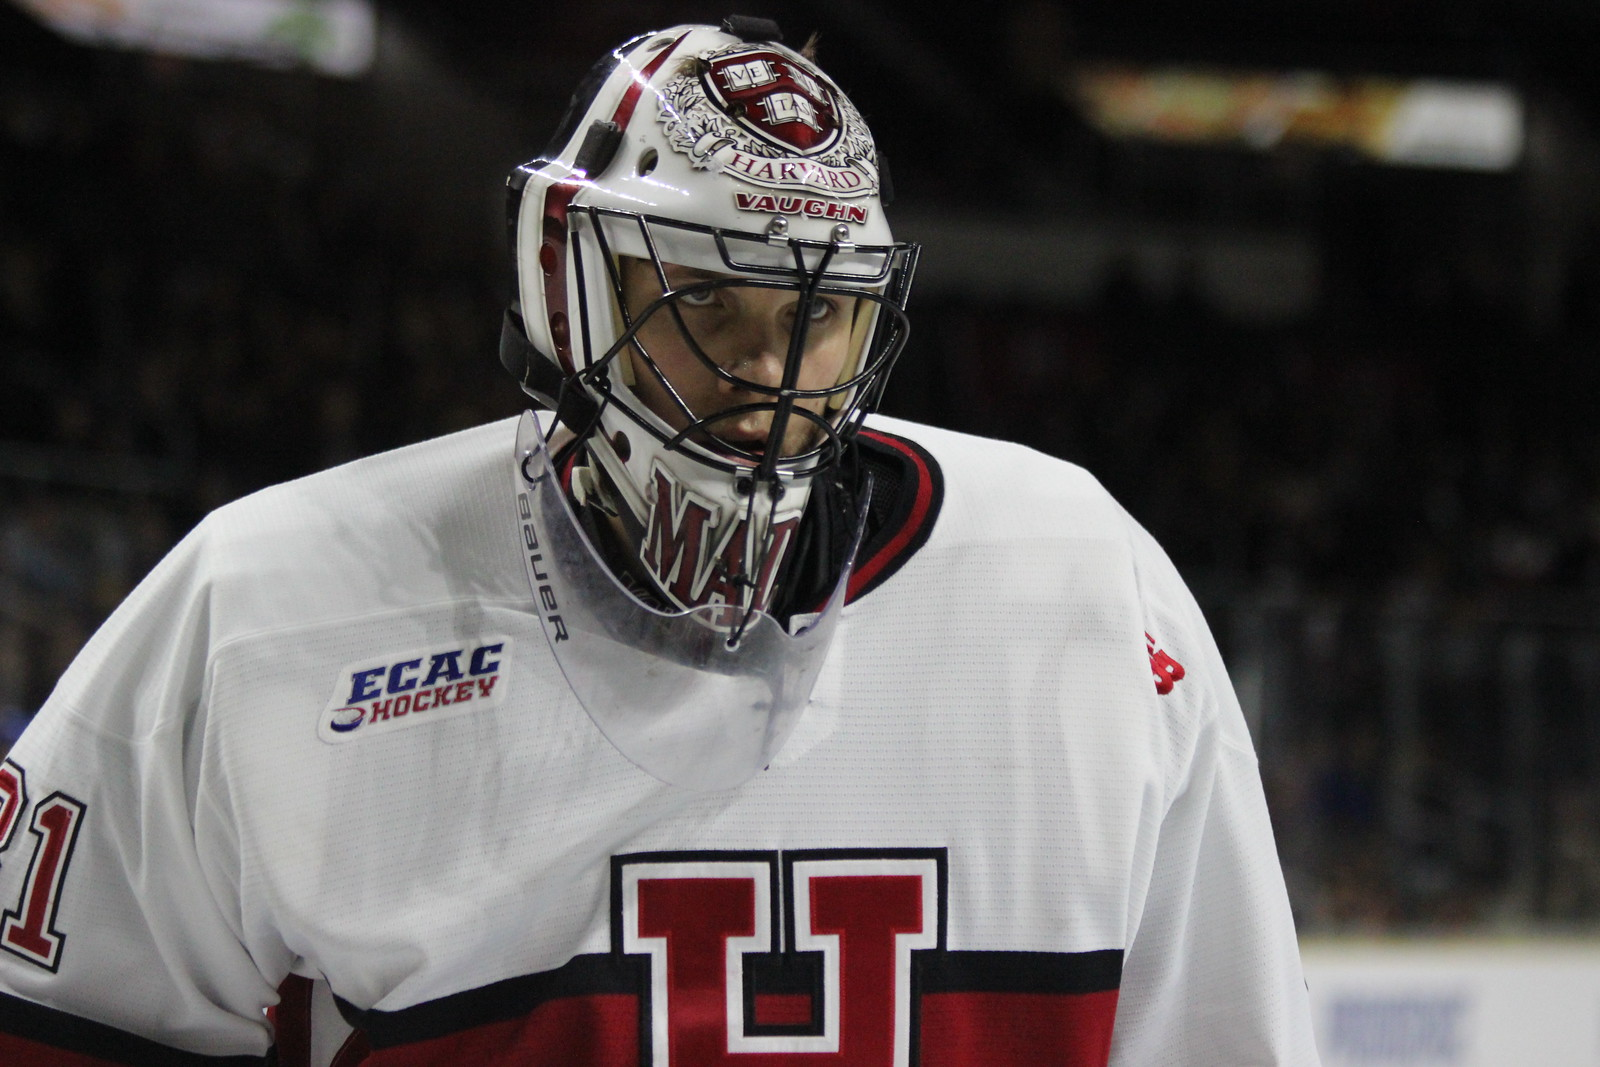 A year after having to fight for the starting job, junior goaltender Merrick Madsen has received the nod in all 35 of the Crimson's games this year. And he's won a program-record 28 of them.